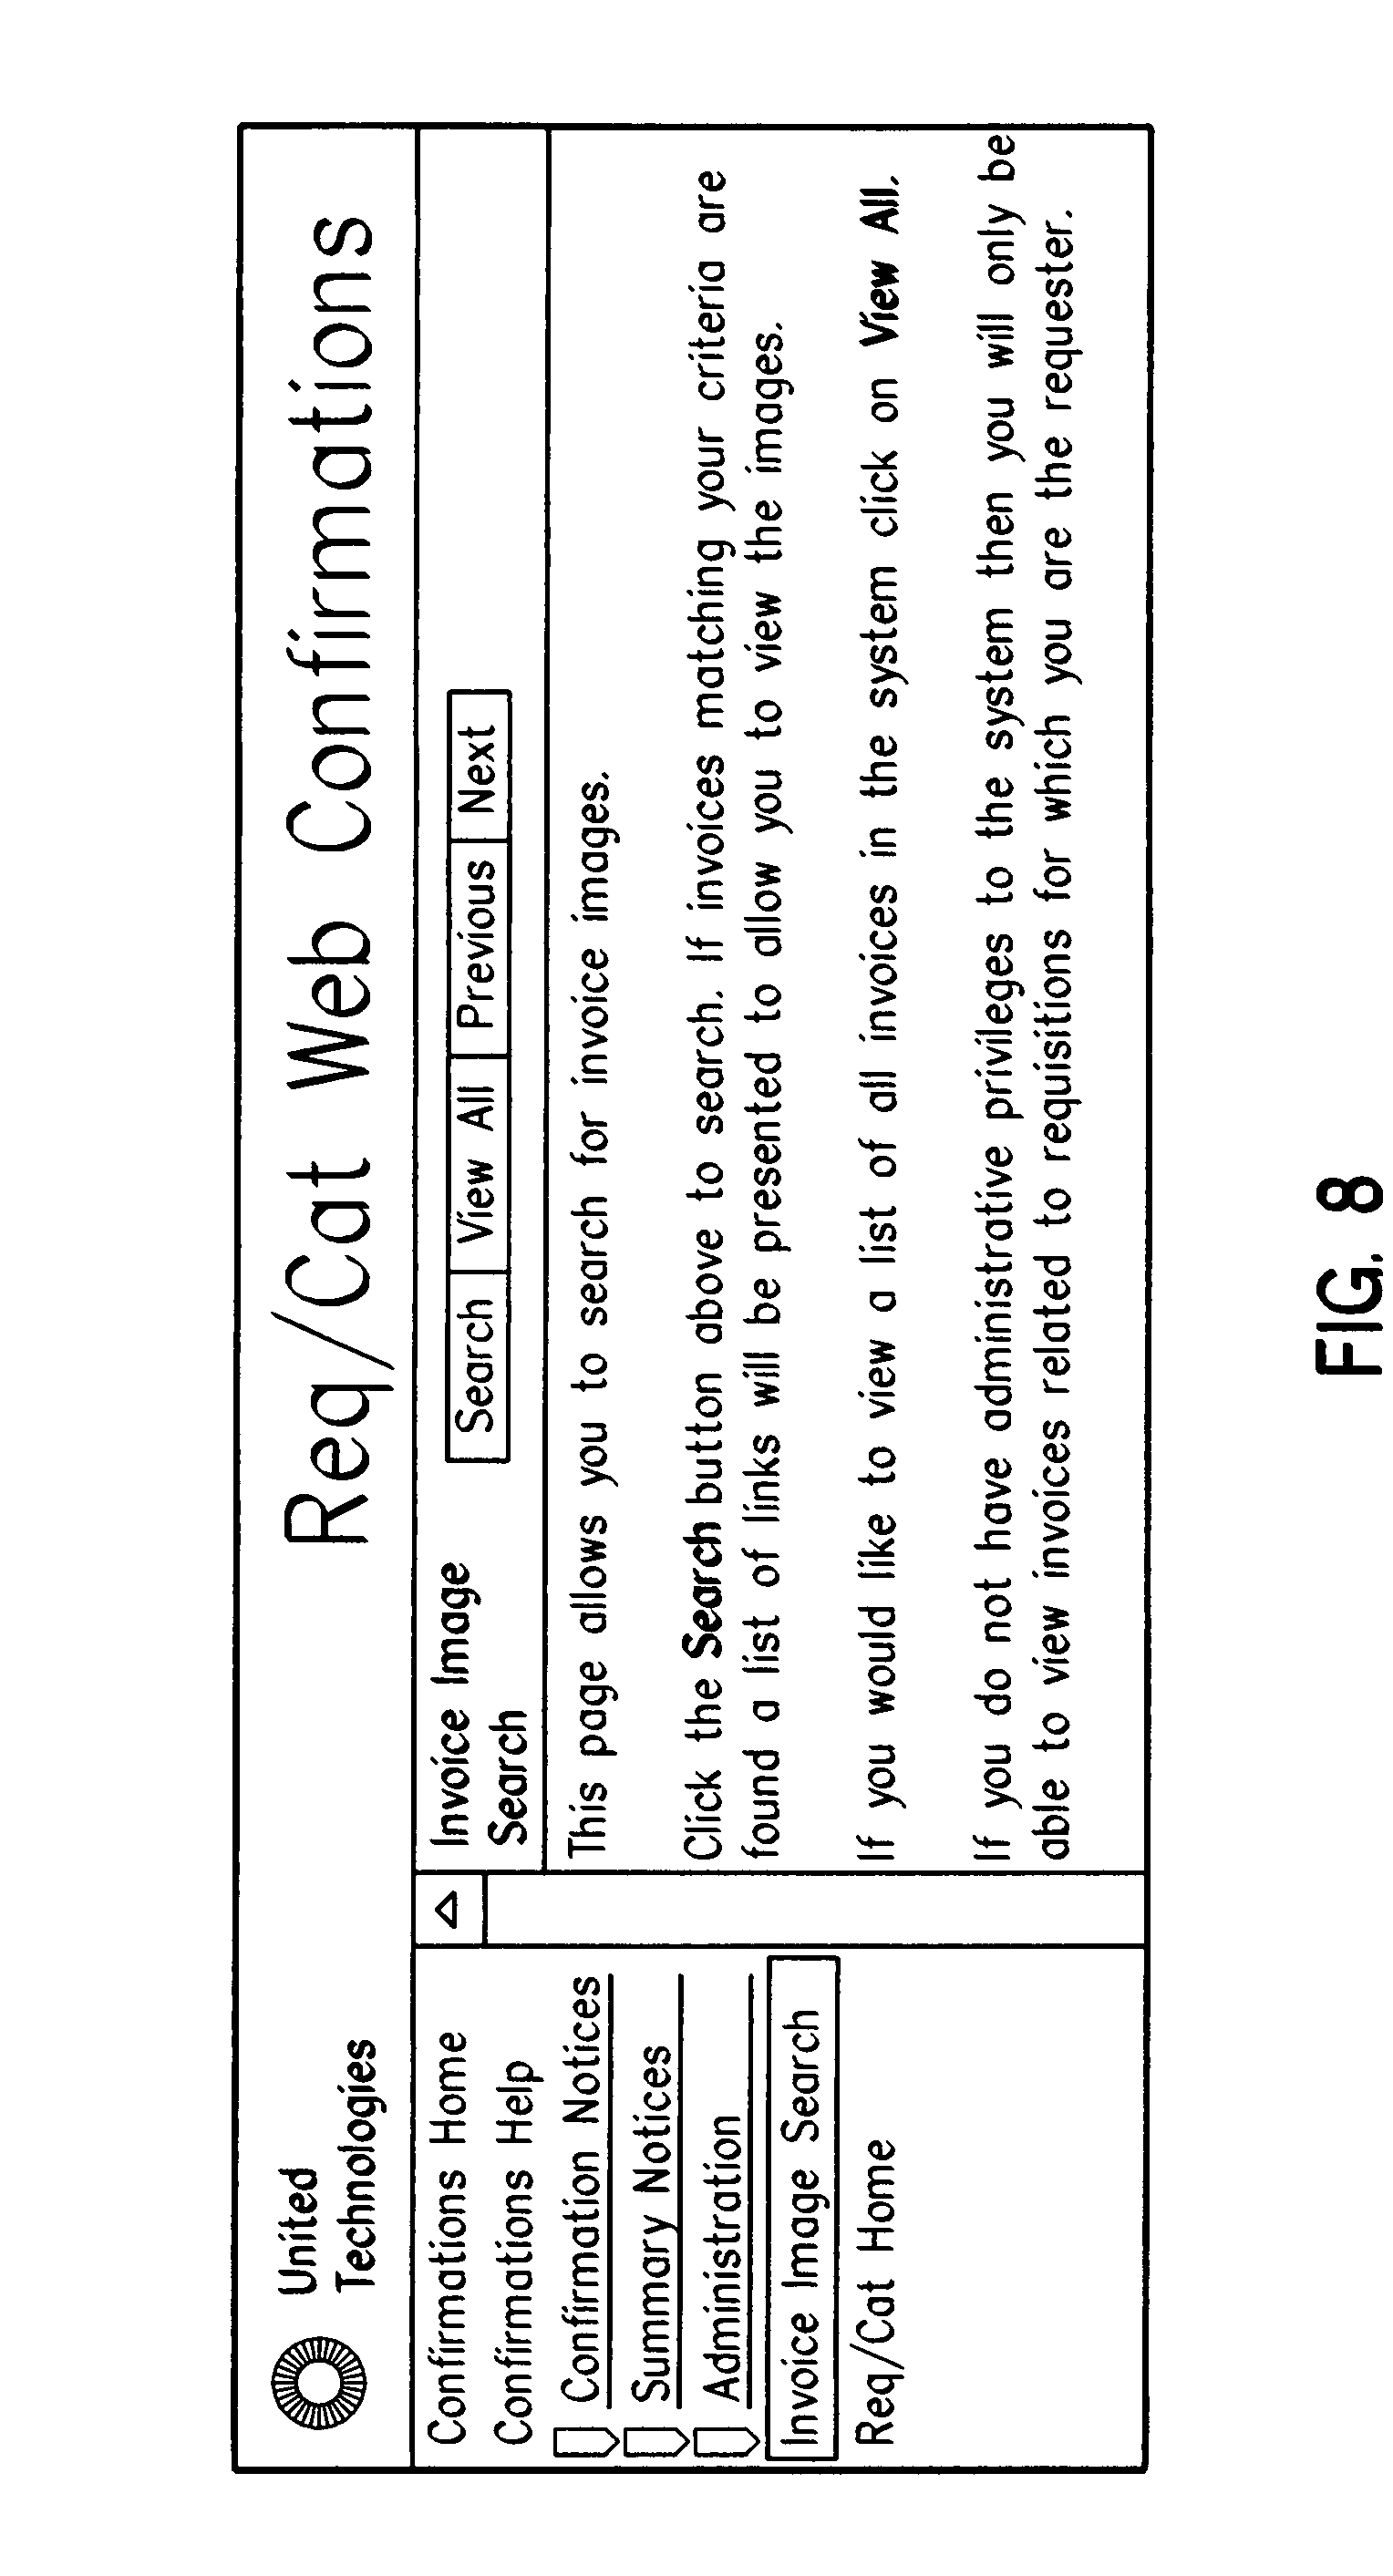 Pay By Phone Receipt Pdf Patent Us  System And Method For Invoice Imaging  Receipts Concur Excel with Write Invoice Word Patent Drawing Used Car Receipt